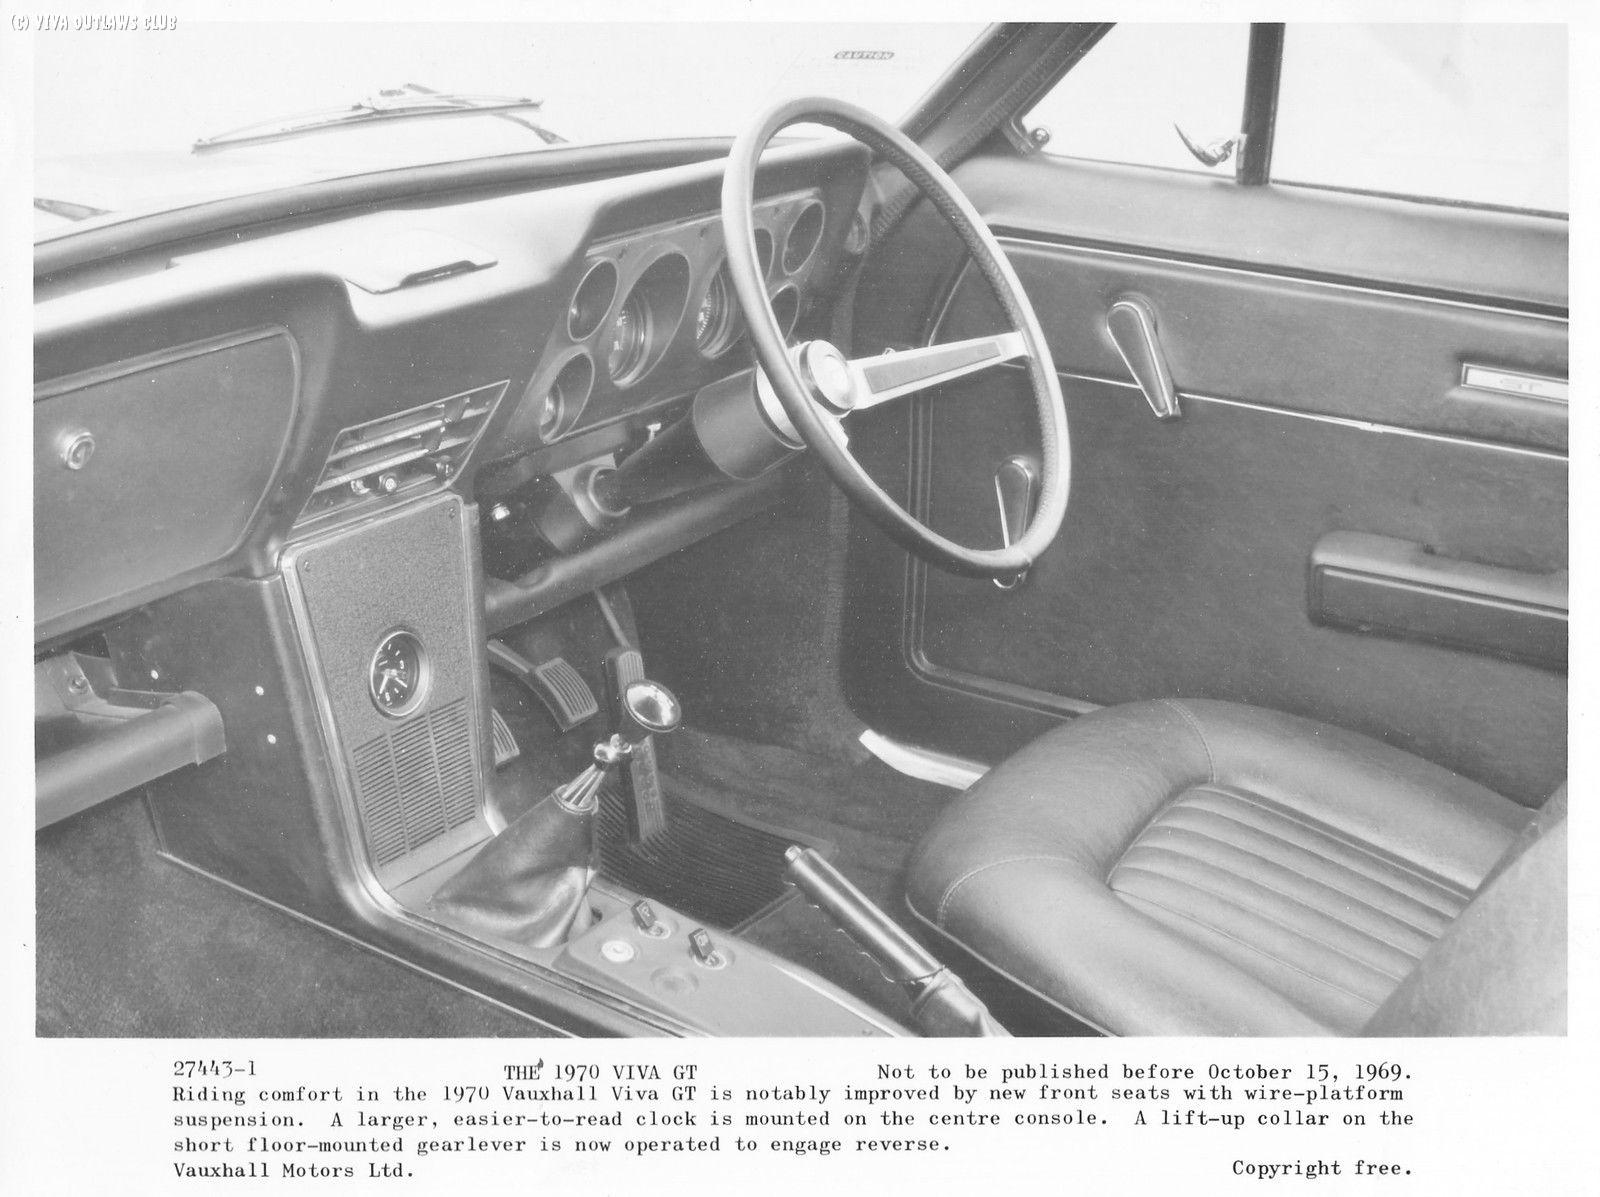 GT Viva GT MKII Interior B&W Press Photo